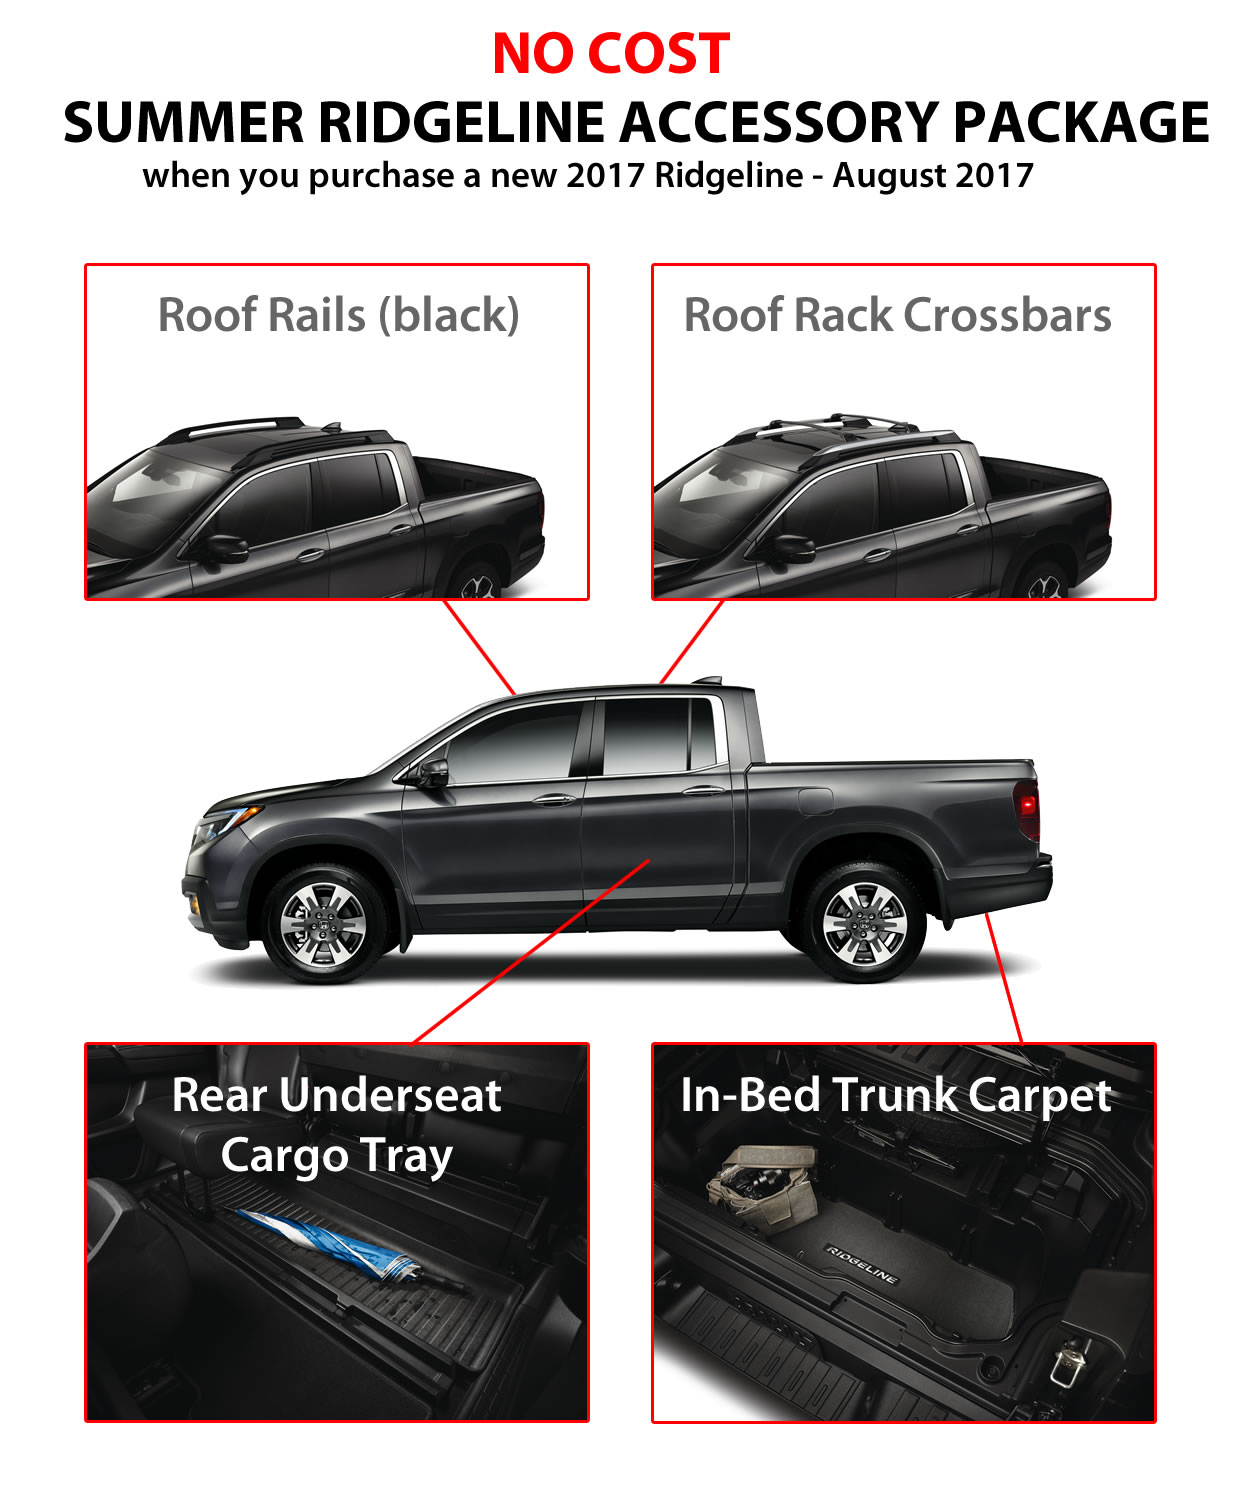 Ridgeline Accessory Package